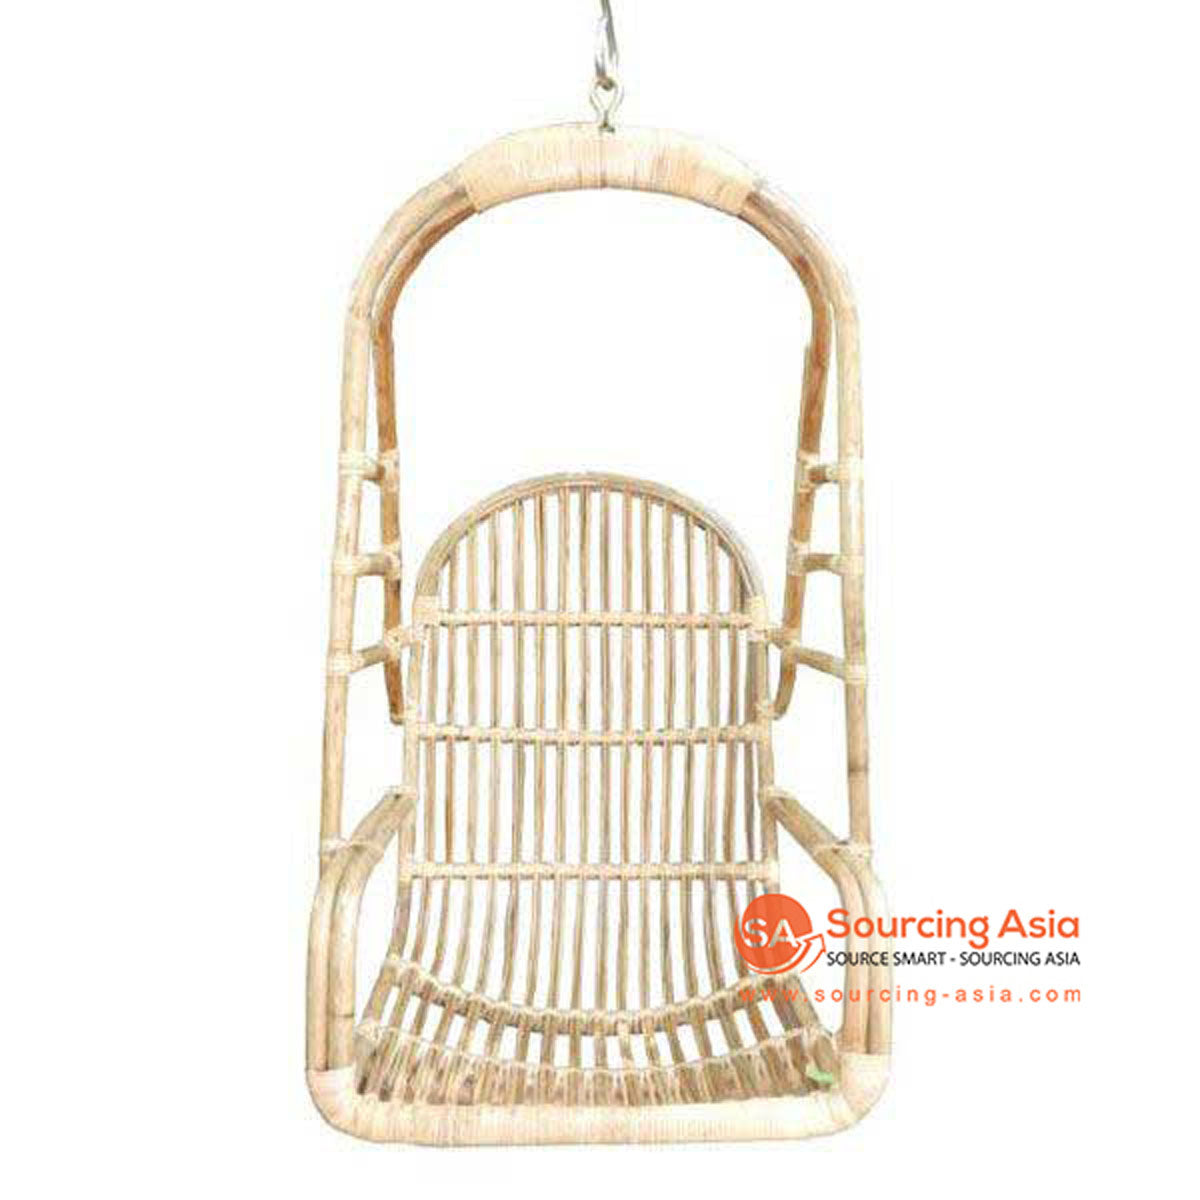 SHL124 NATURAL RATTAN UPHOLSTERED HANGING CHAIR